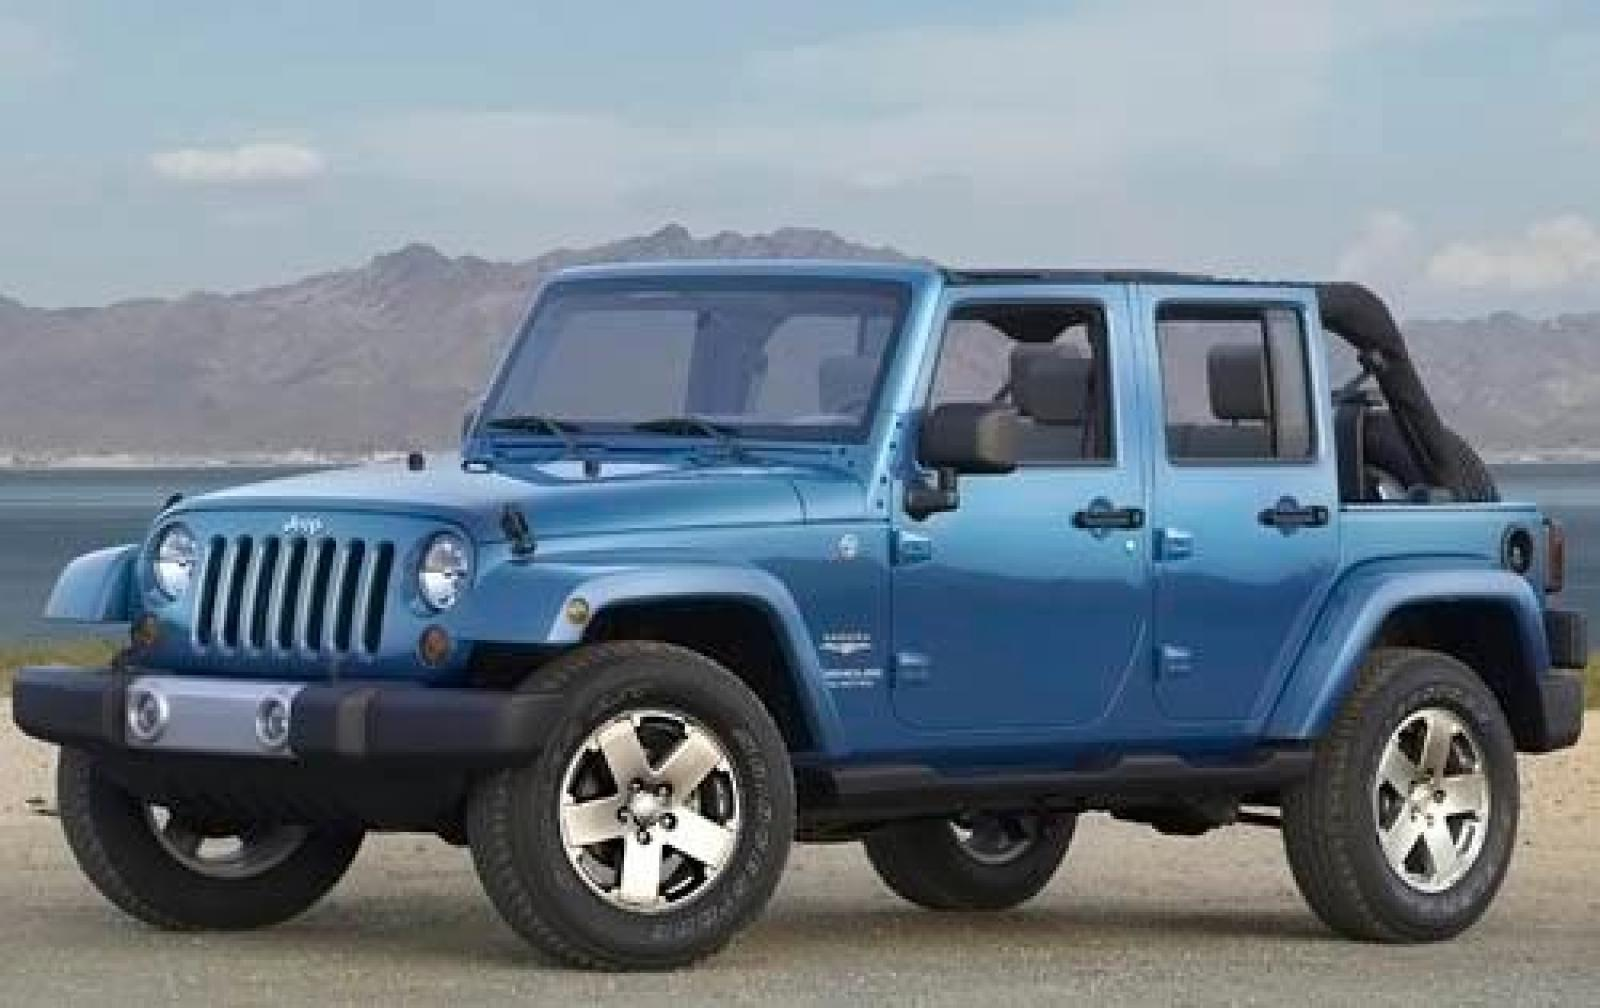 2010 jeep wrangler information and photos zombiedrive. Black Bedroom Furniture Sets. Home Design Ideas